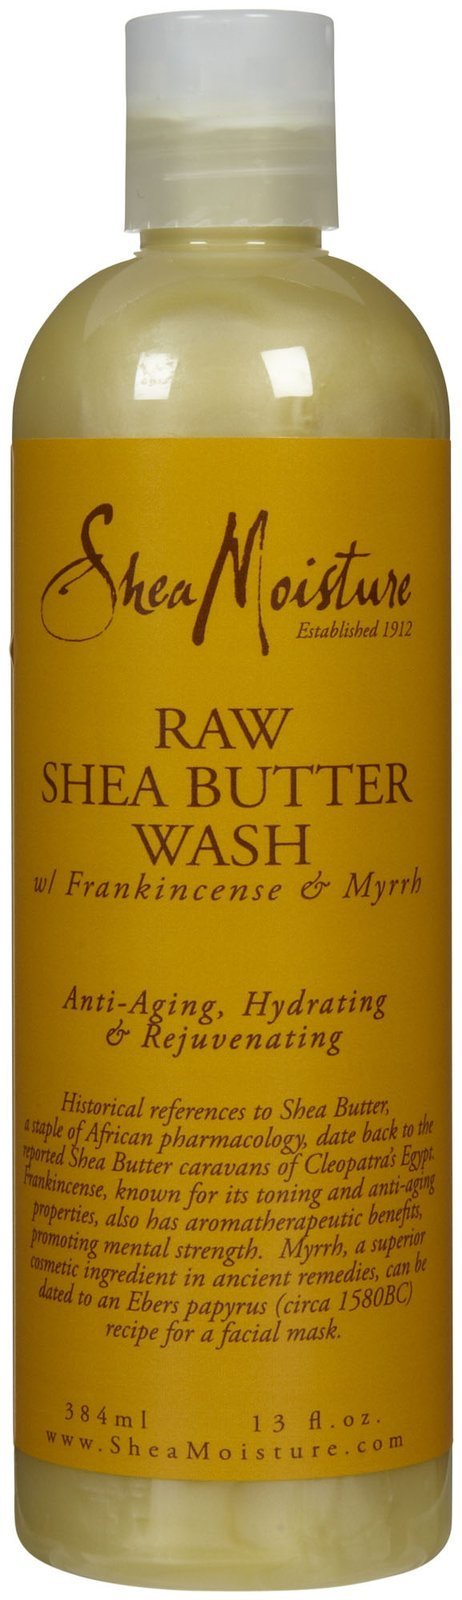 Shea Moisture Raw Shea Butter Body Wash-13 oz